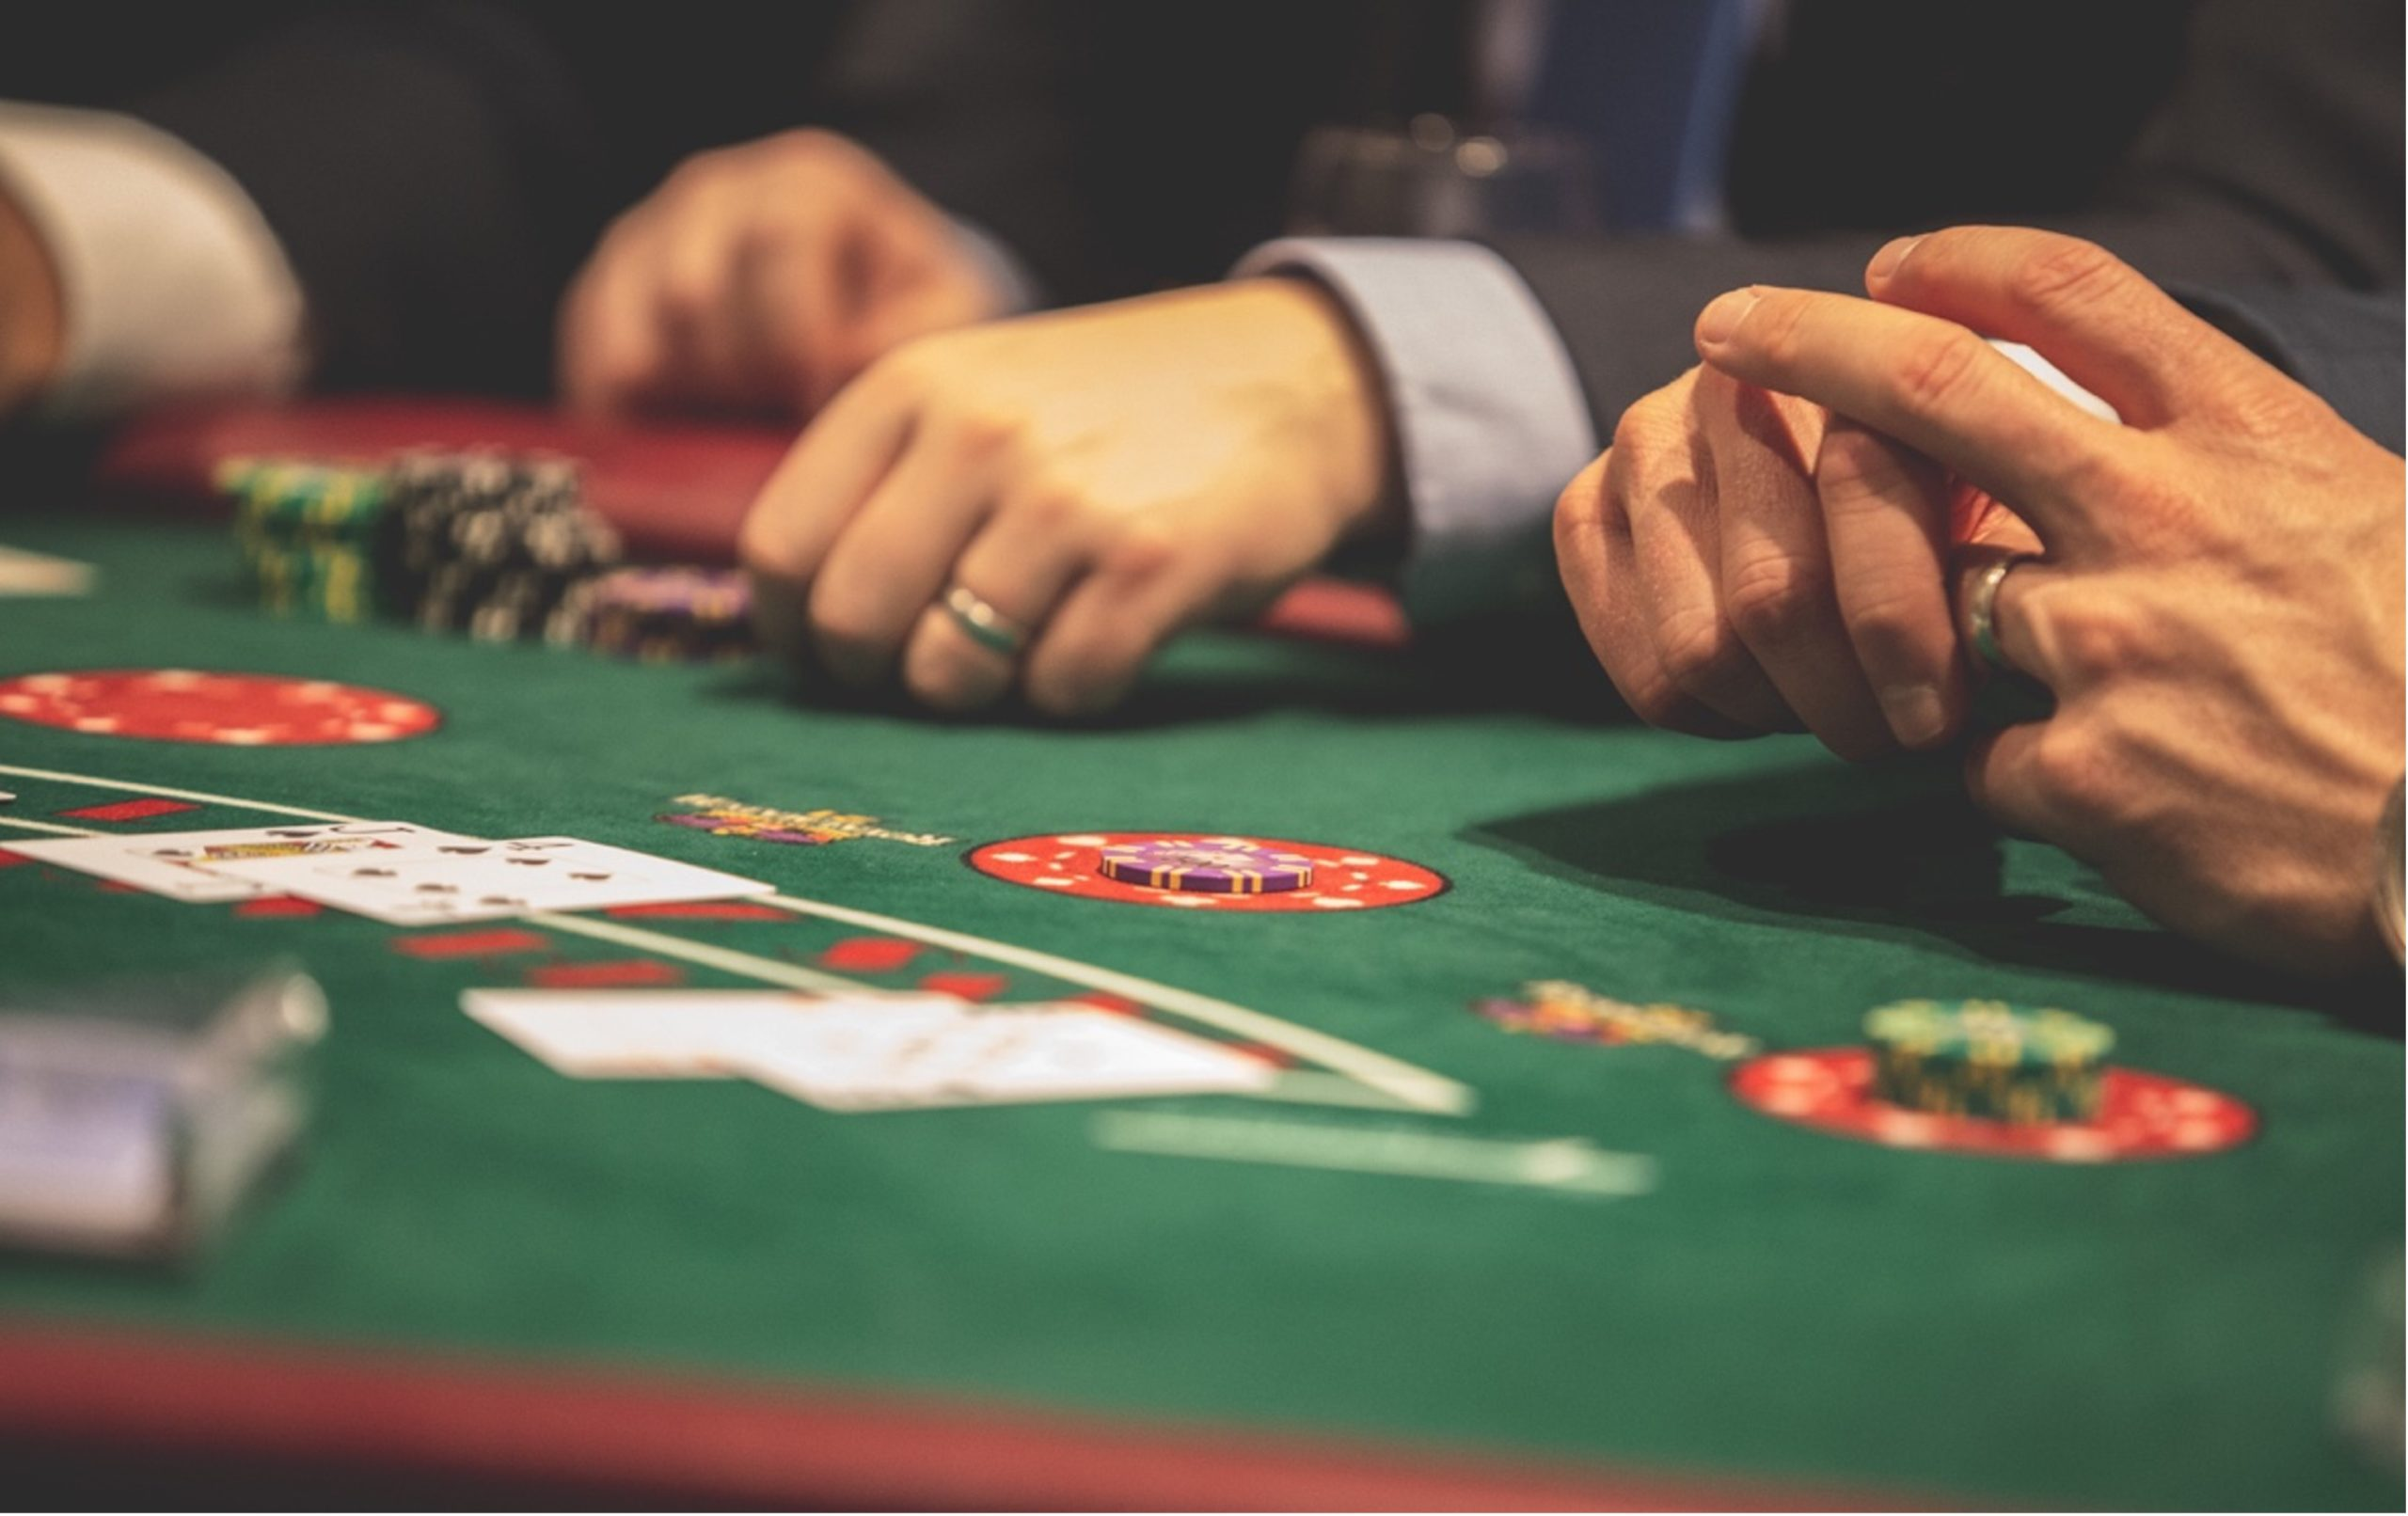 learn how to play online poker for real money